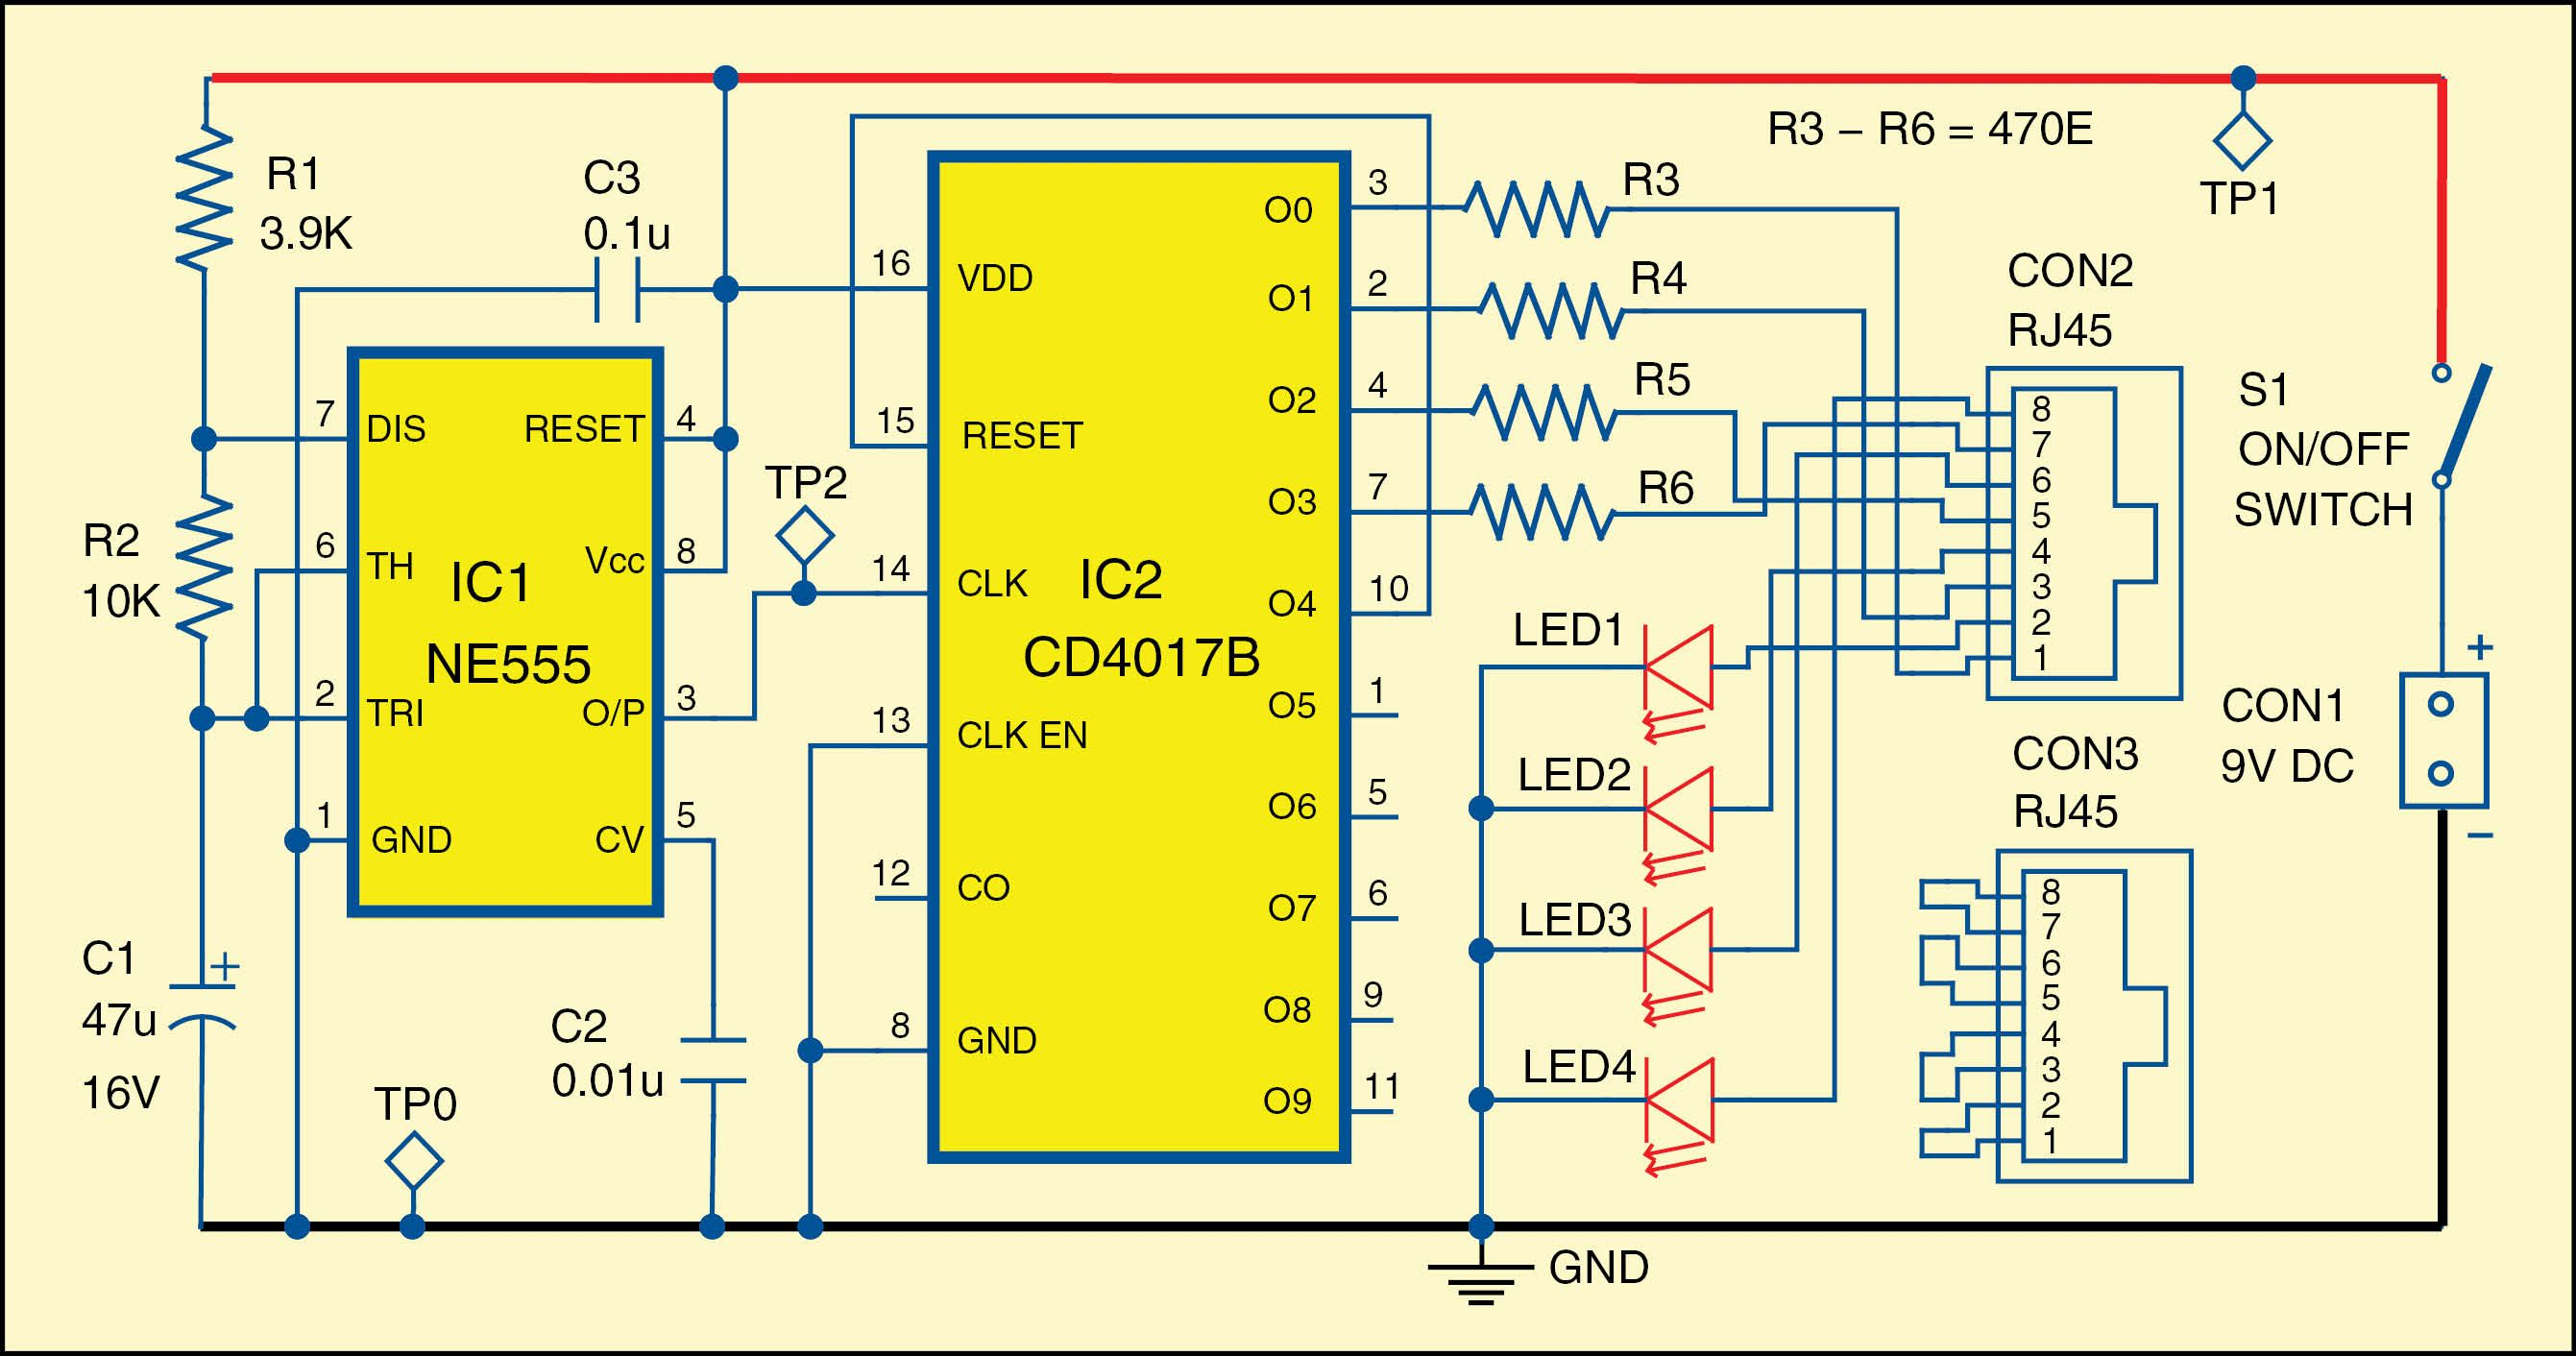 rj45 network cable tester circuit schematic wiring diagram show cable tester circuit moreover diagram of a [ 2682 x 1412 Pixel ]